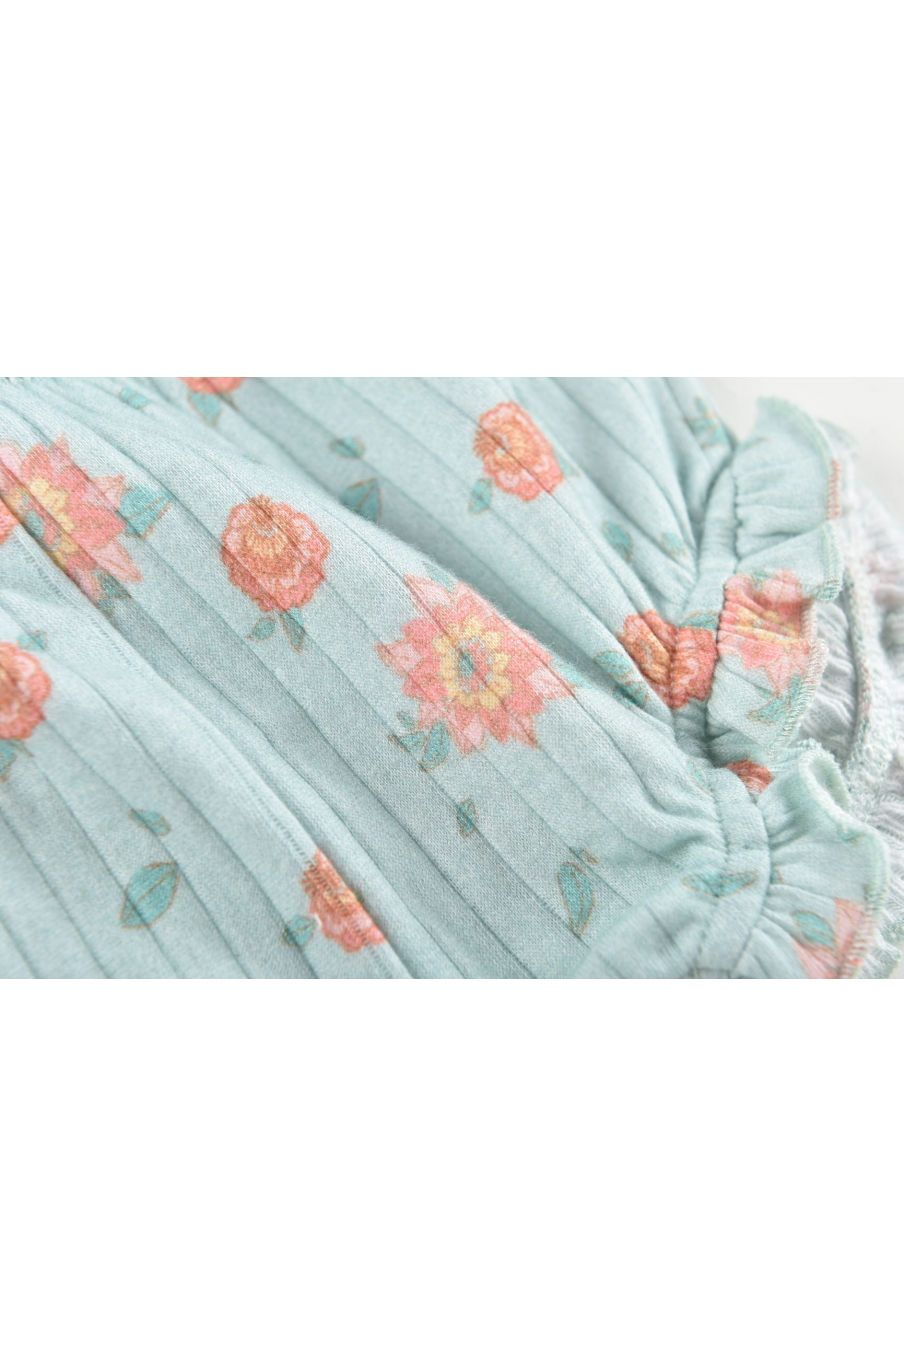 boheme chic vintage bloomer bébé fille anchita vintage blue flowers